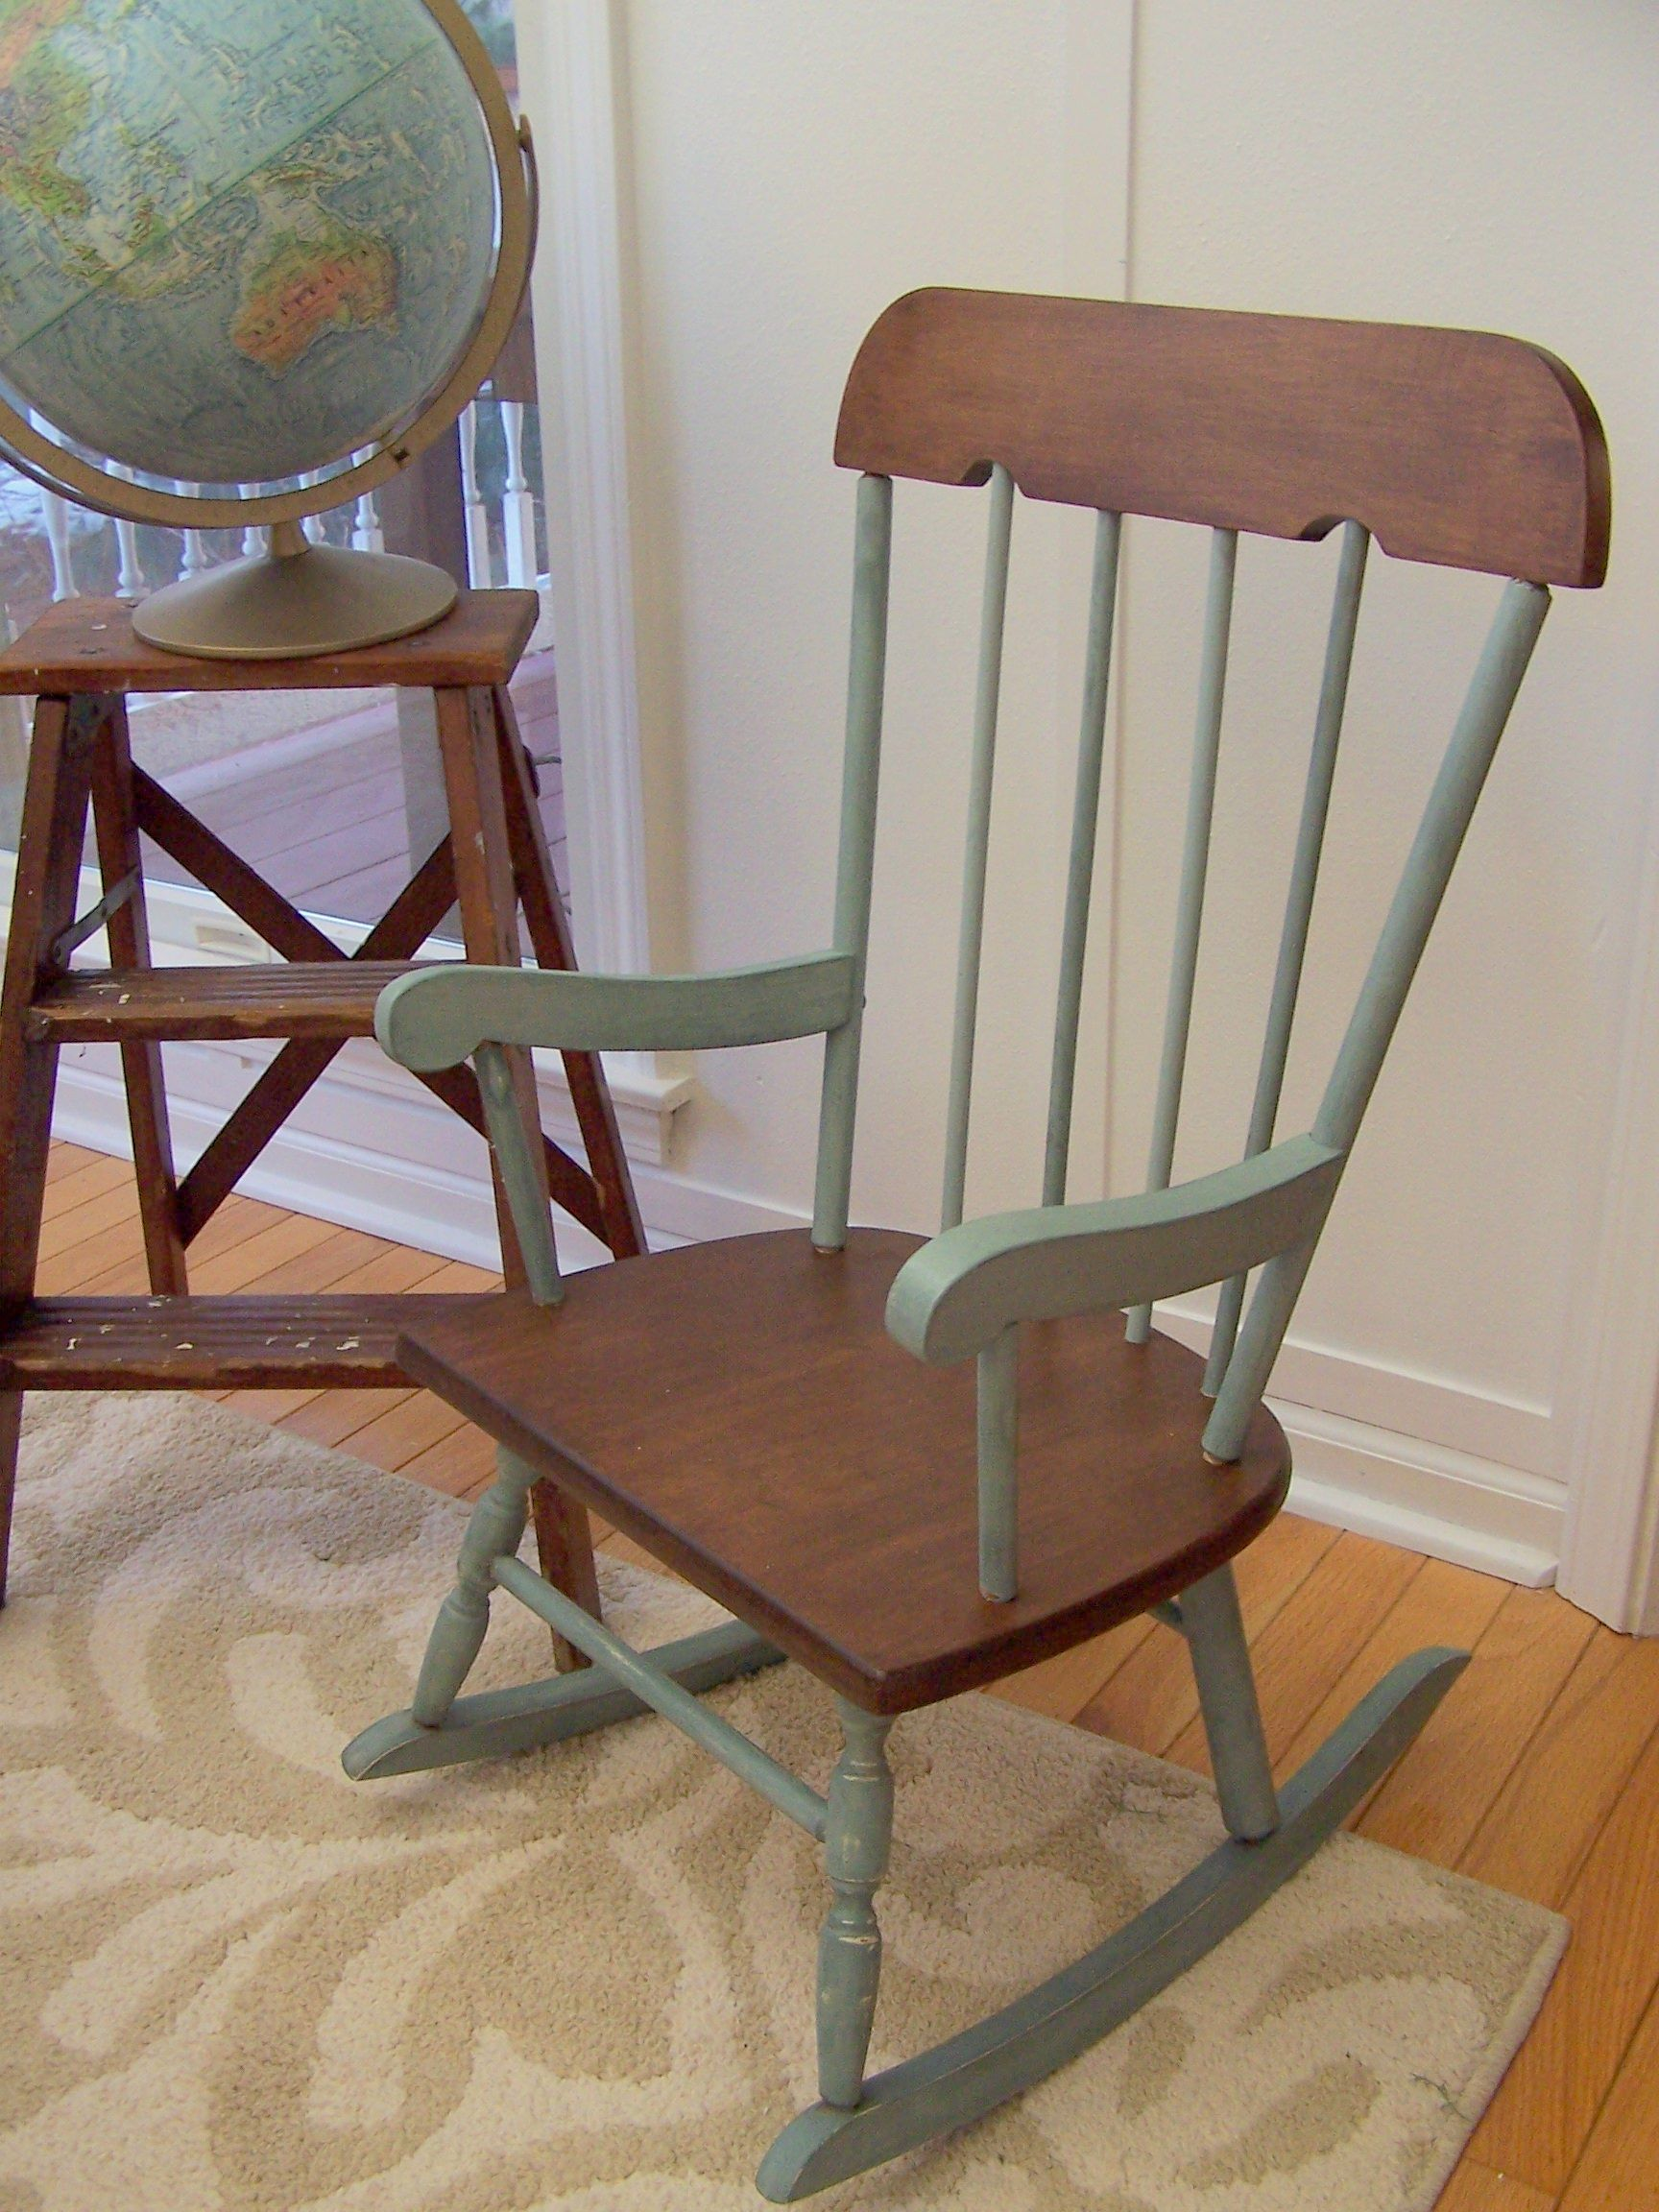 Vintage Rocking Chair   Google Search